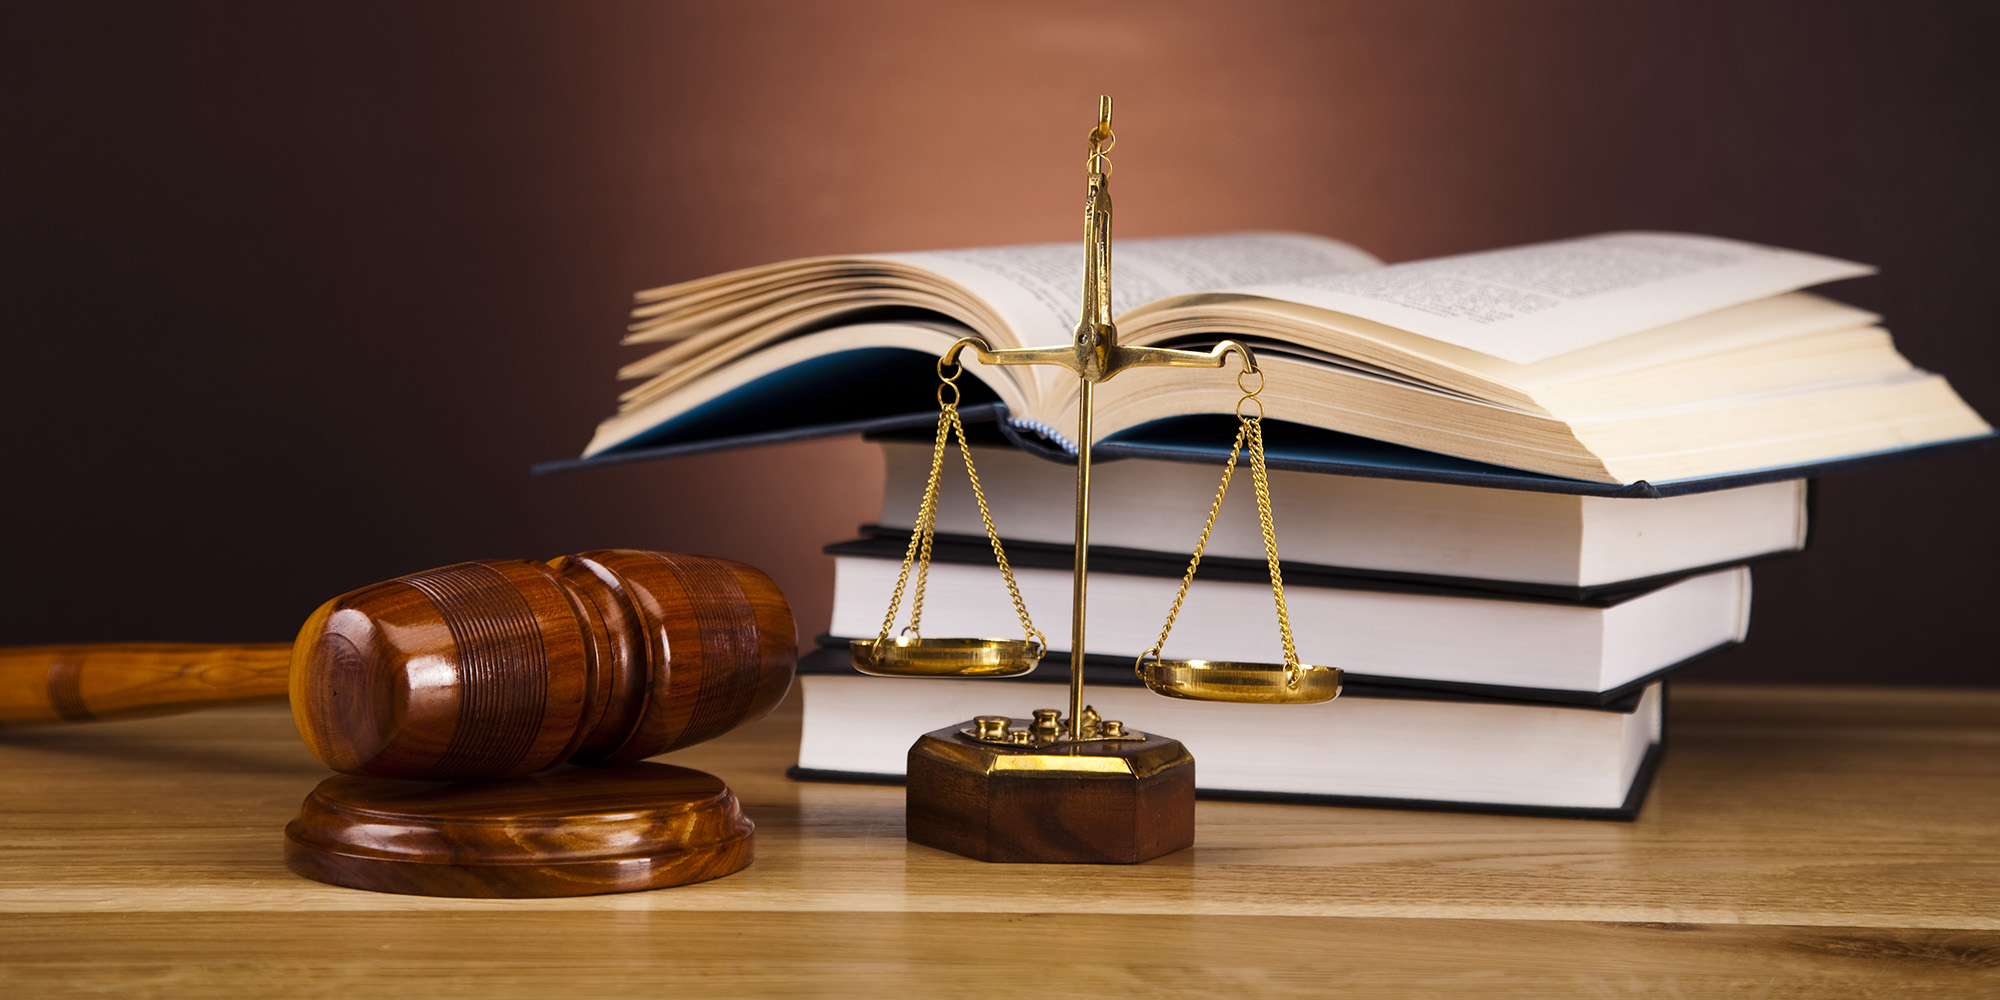 Court gavel. Scales of justice. Law books